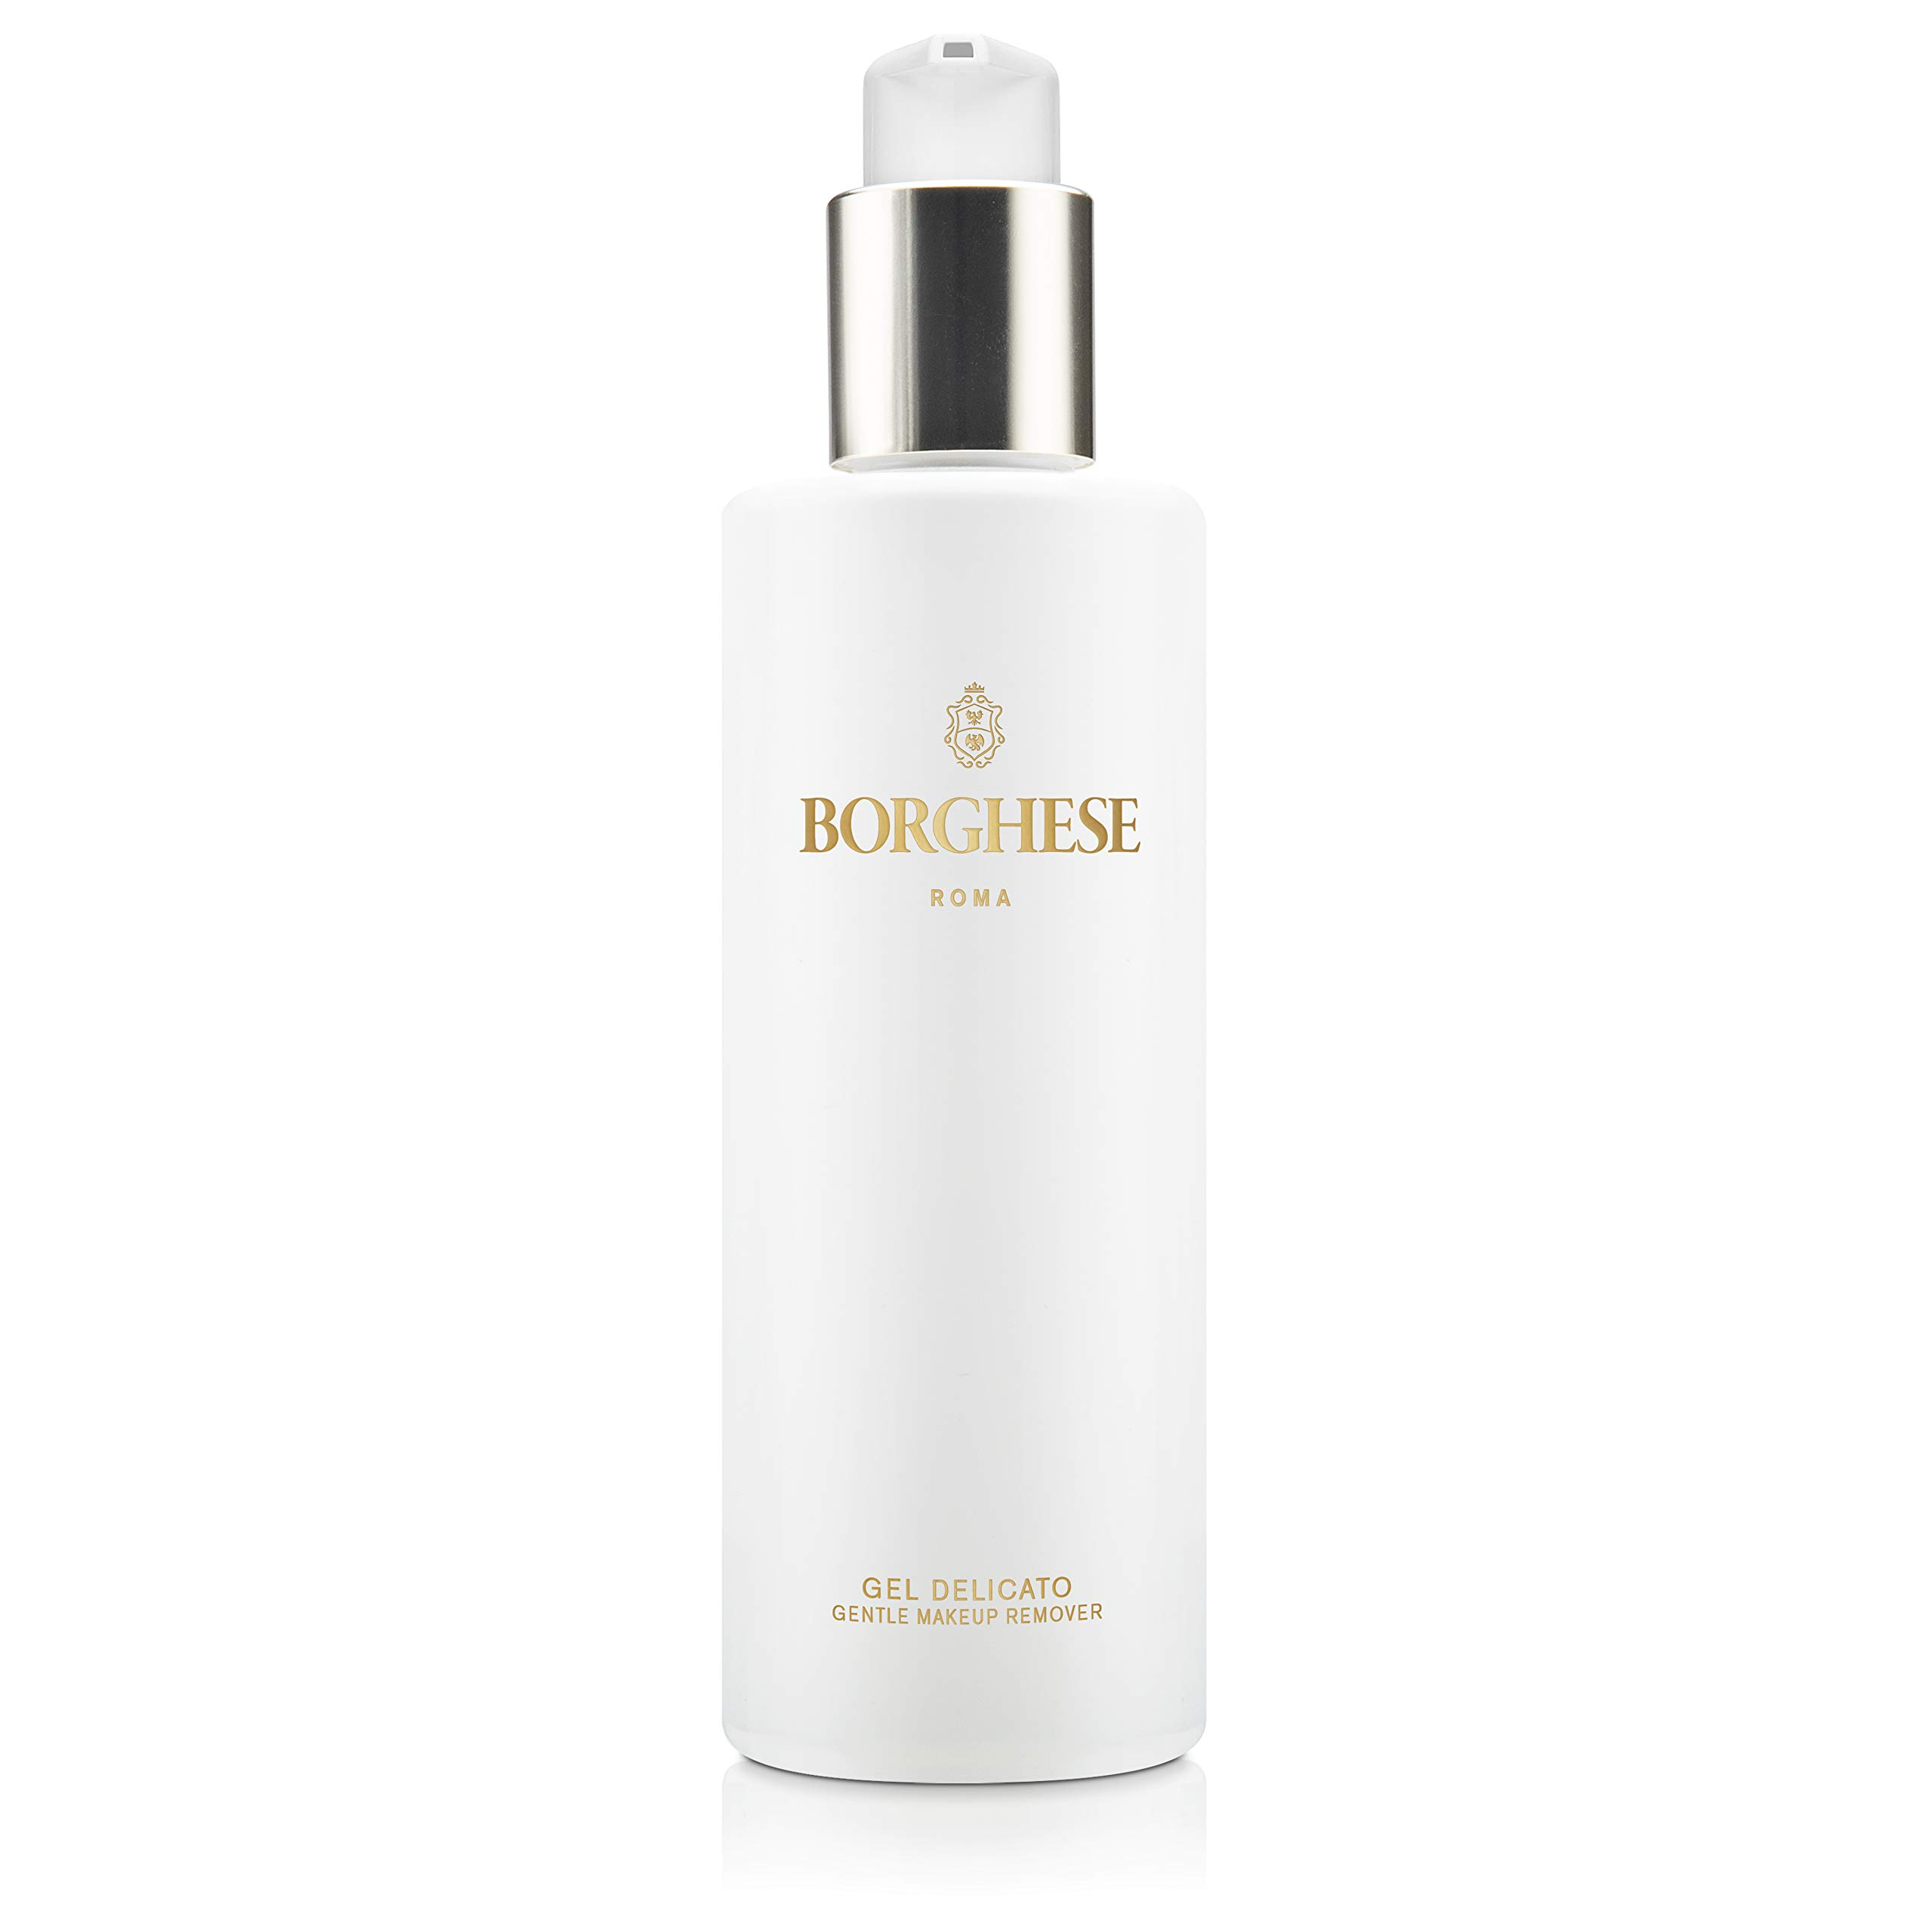 Borghese Gel Delicato Oil Free Gentle Makeup Remover, 8 oz. by Borghese